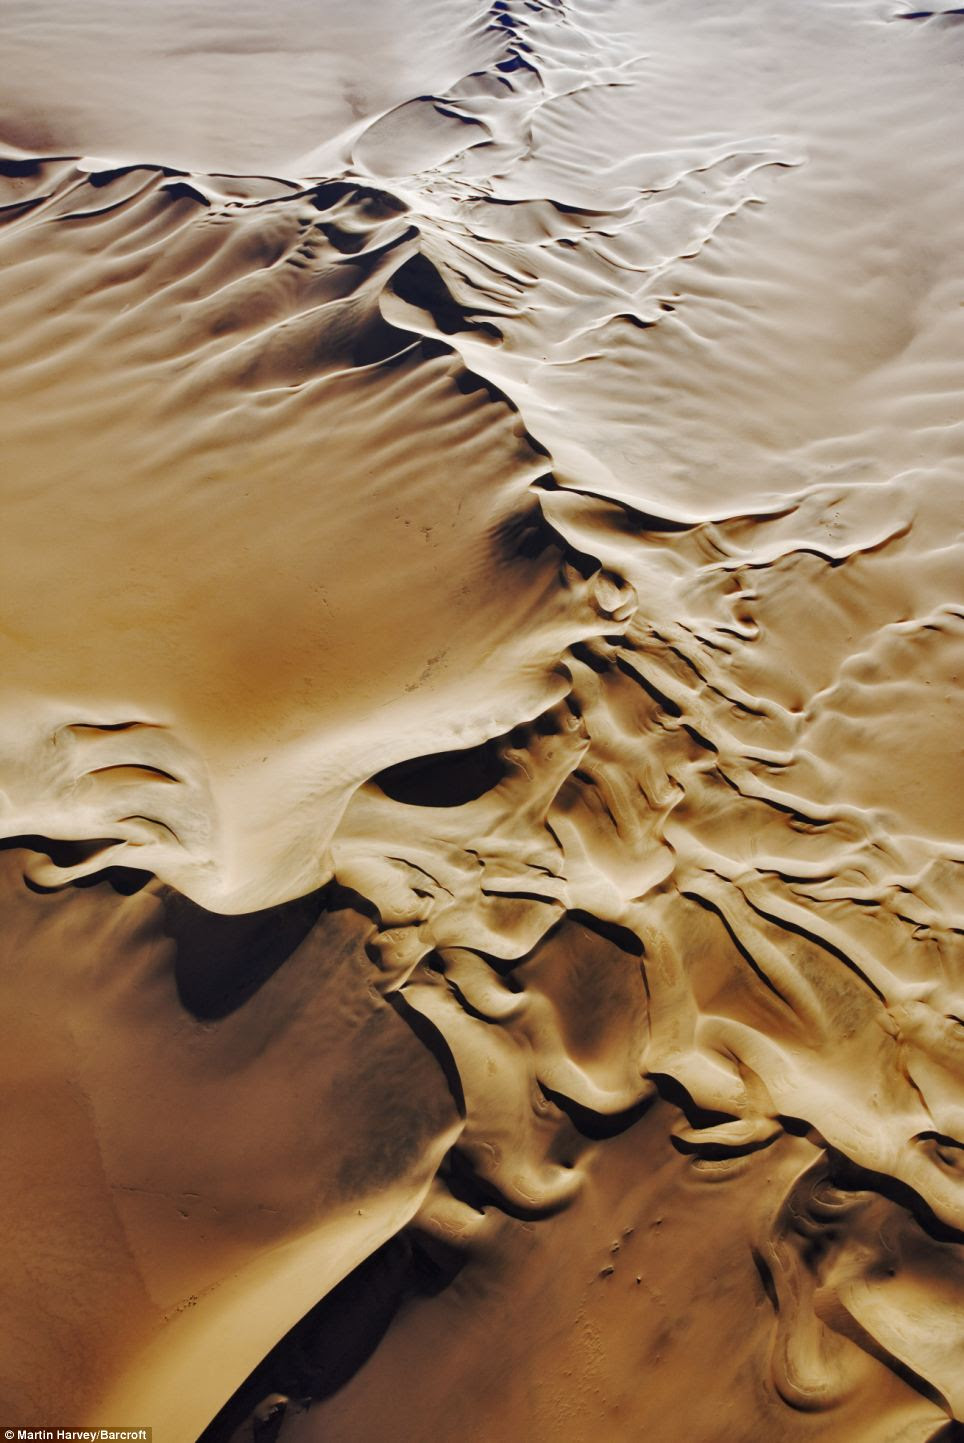 Shifting sands: Another beautiful aerial image shows the sand dunes of the Namib Desert as seen from the air